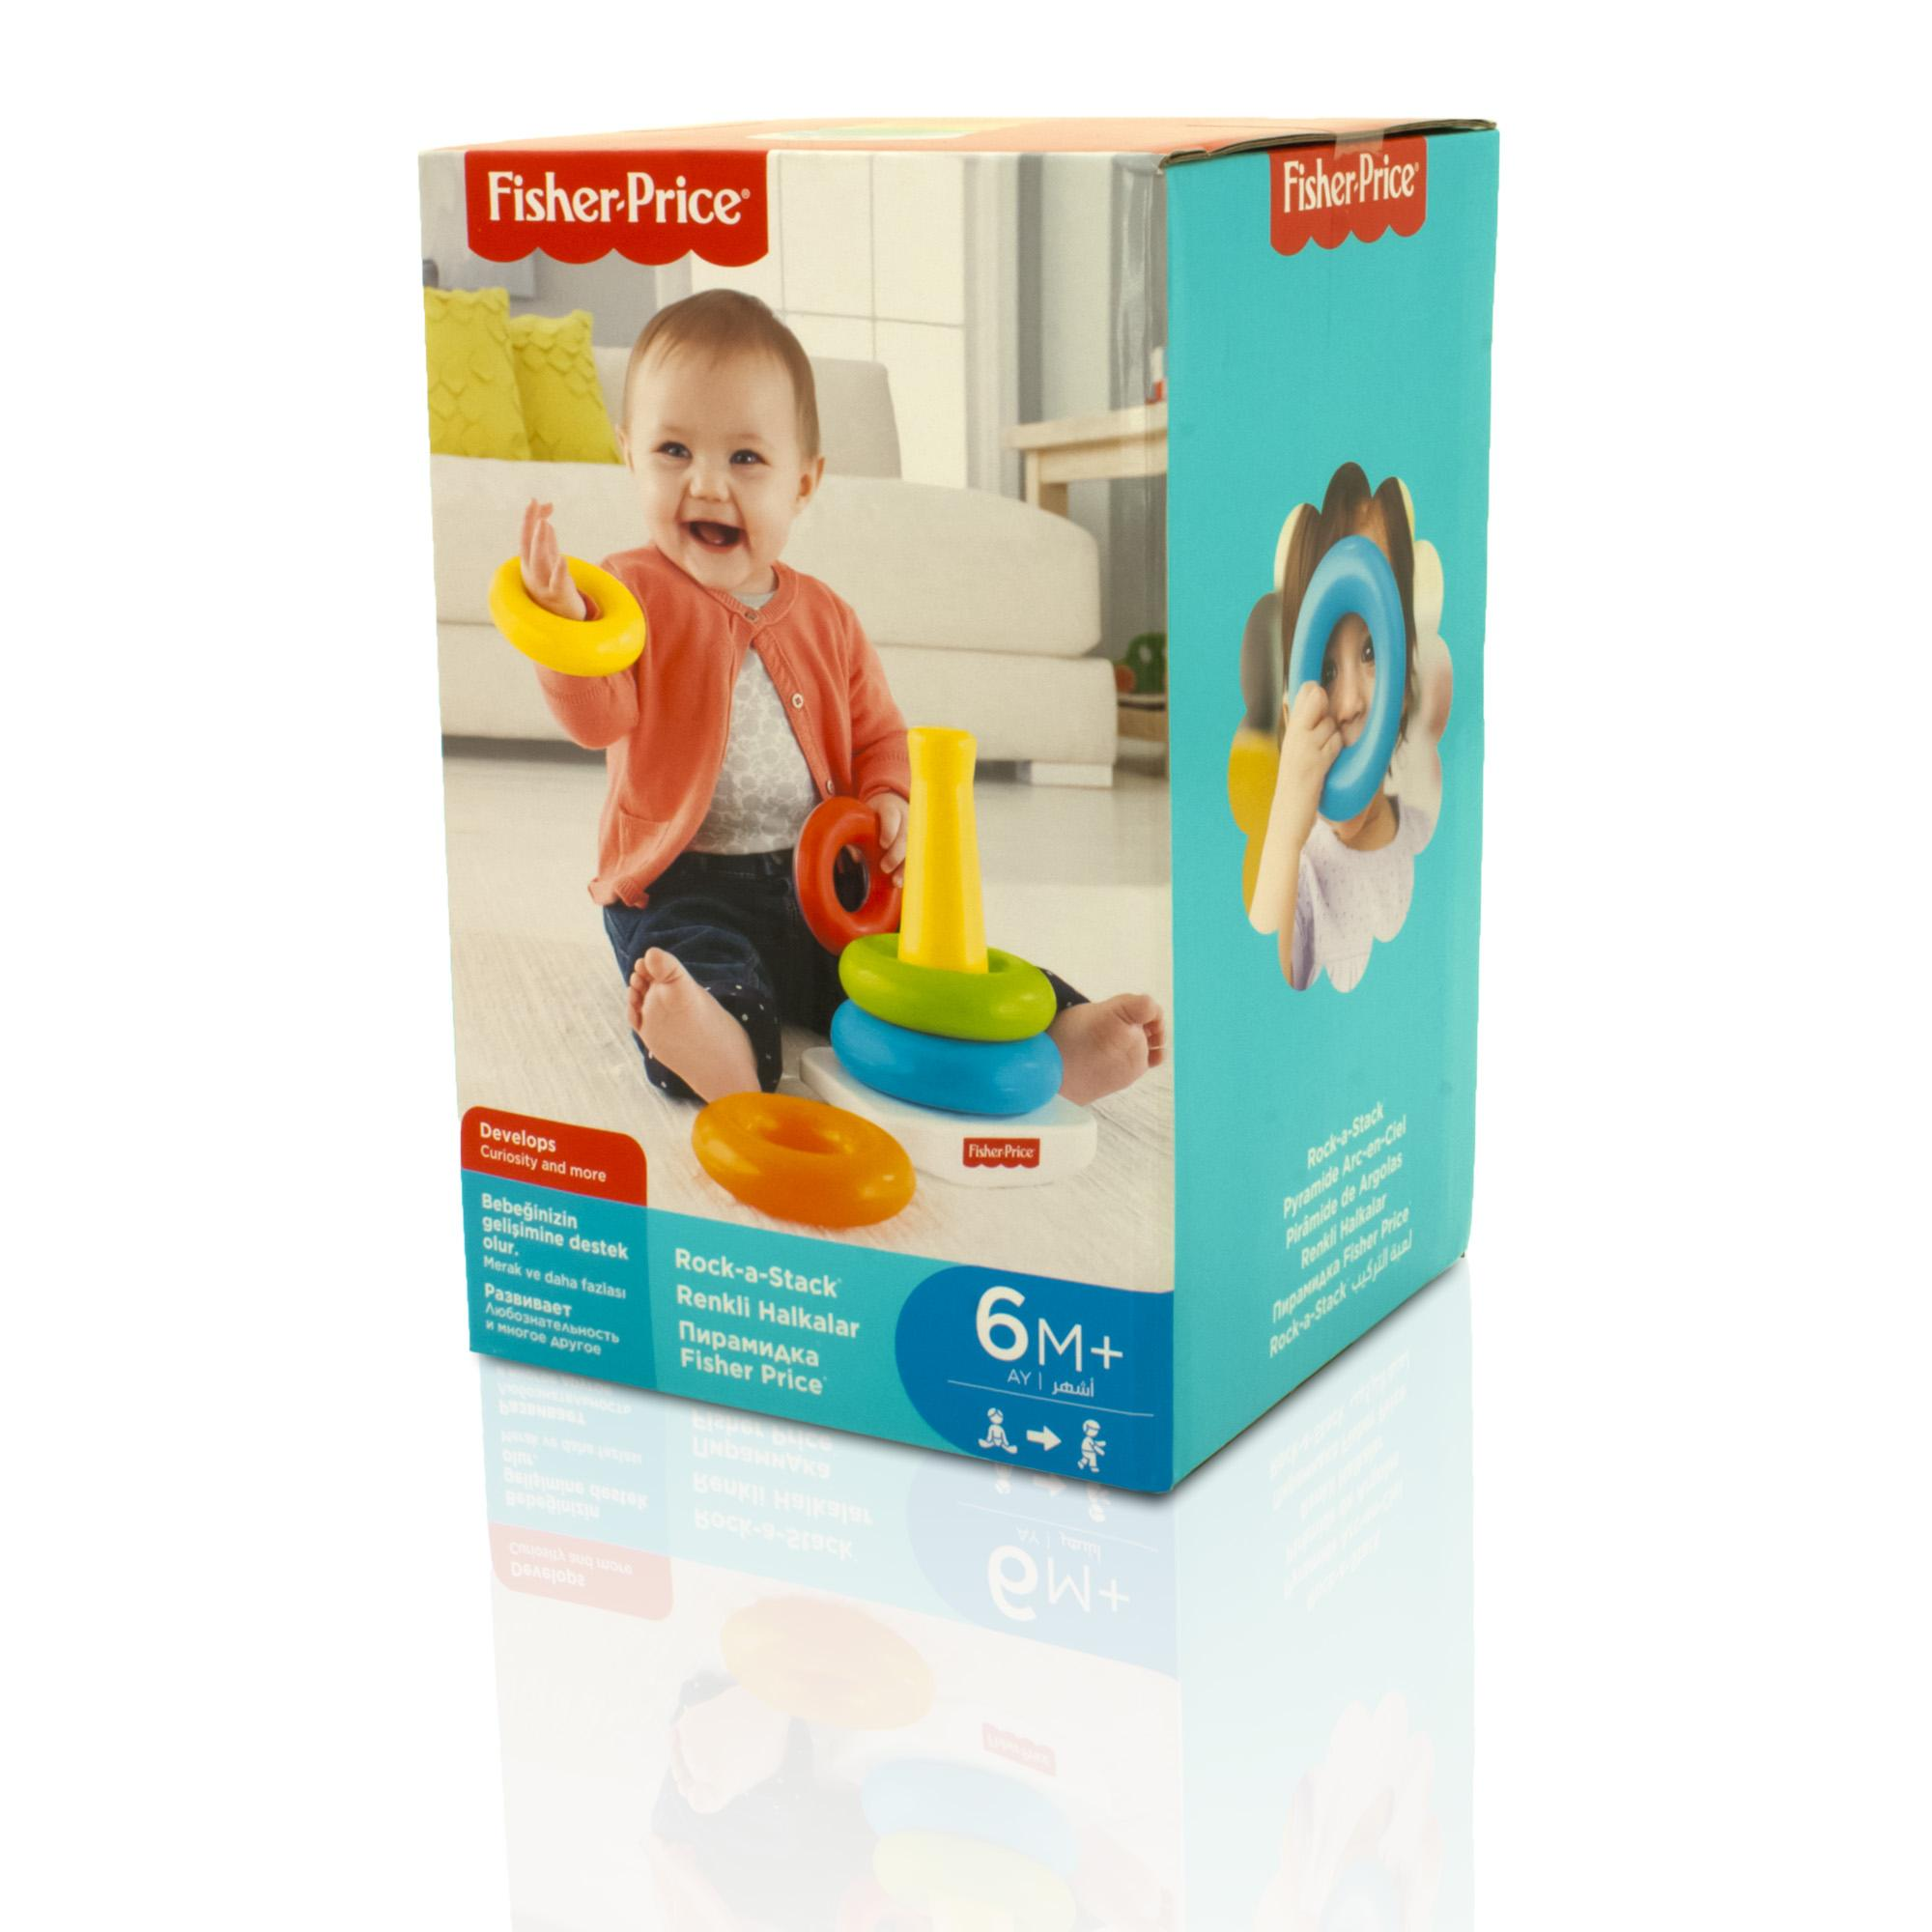 Stacking Rings Toy : Fisher price rock a stack stacking rings baby toy new